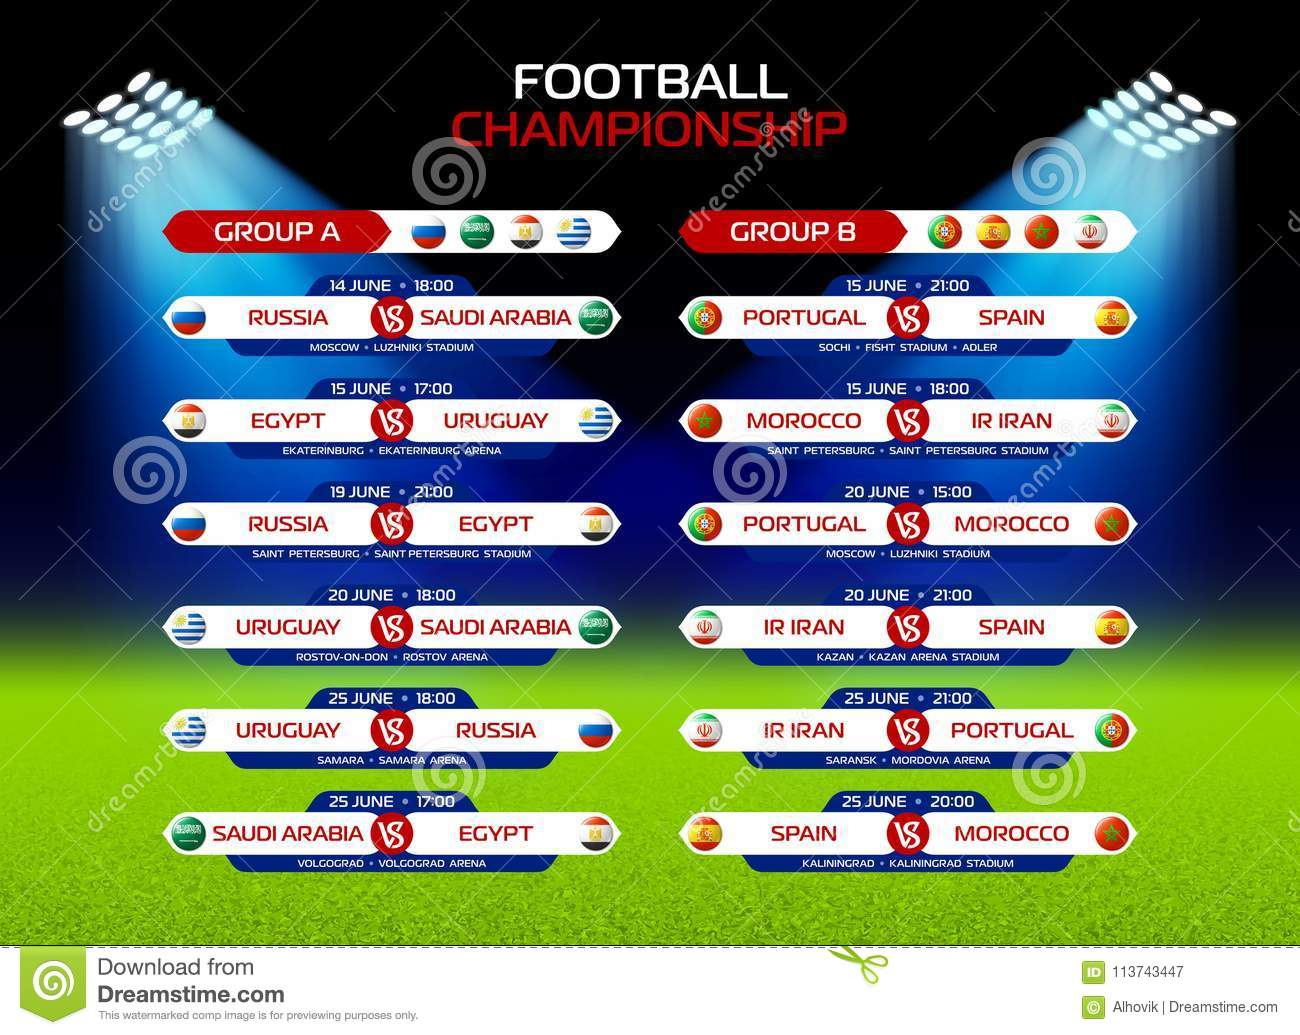 football championship match schedule in russia 2018 calendar template date time location